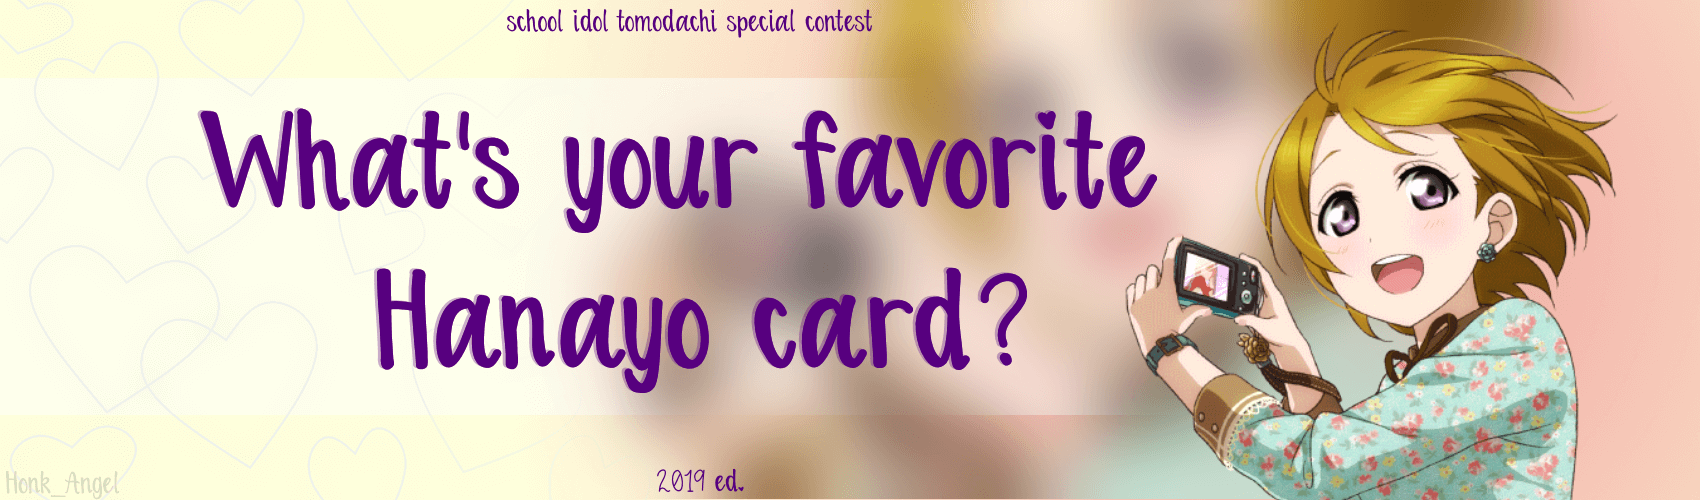 What's your favorite Hanayo card? 2019 ed.